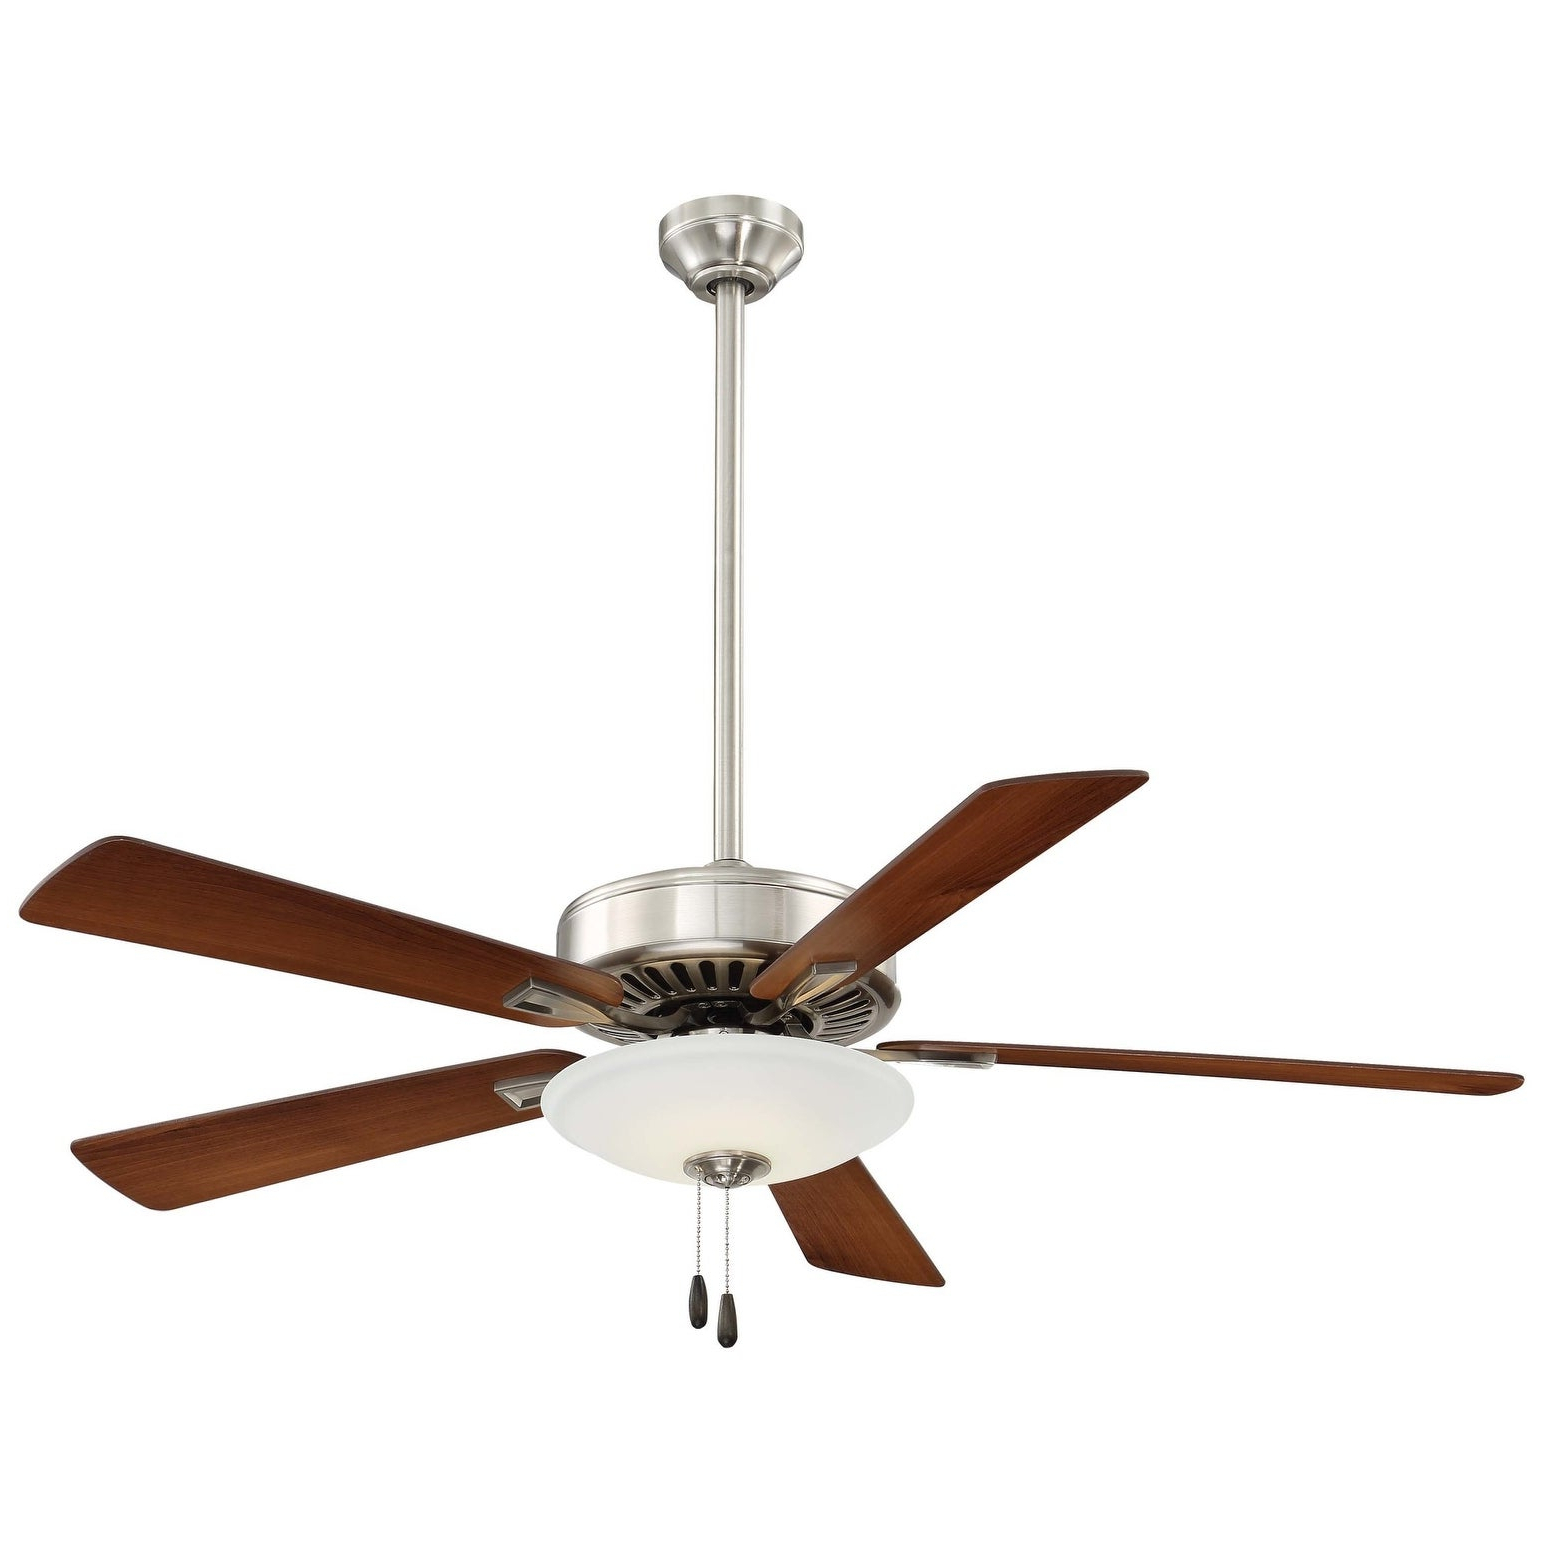 """Contractor 5 Blade Ceiling Fans Intended For Current Minkaaire Contractor Uni Pack Led Contractor Uni Pack 52"""" 5 Blade Led Indoor Ceiling Fan (View 20 of 20)"""